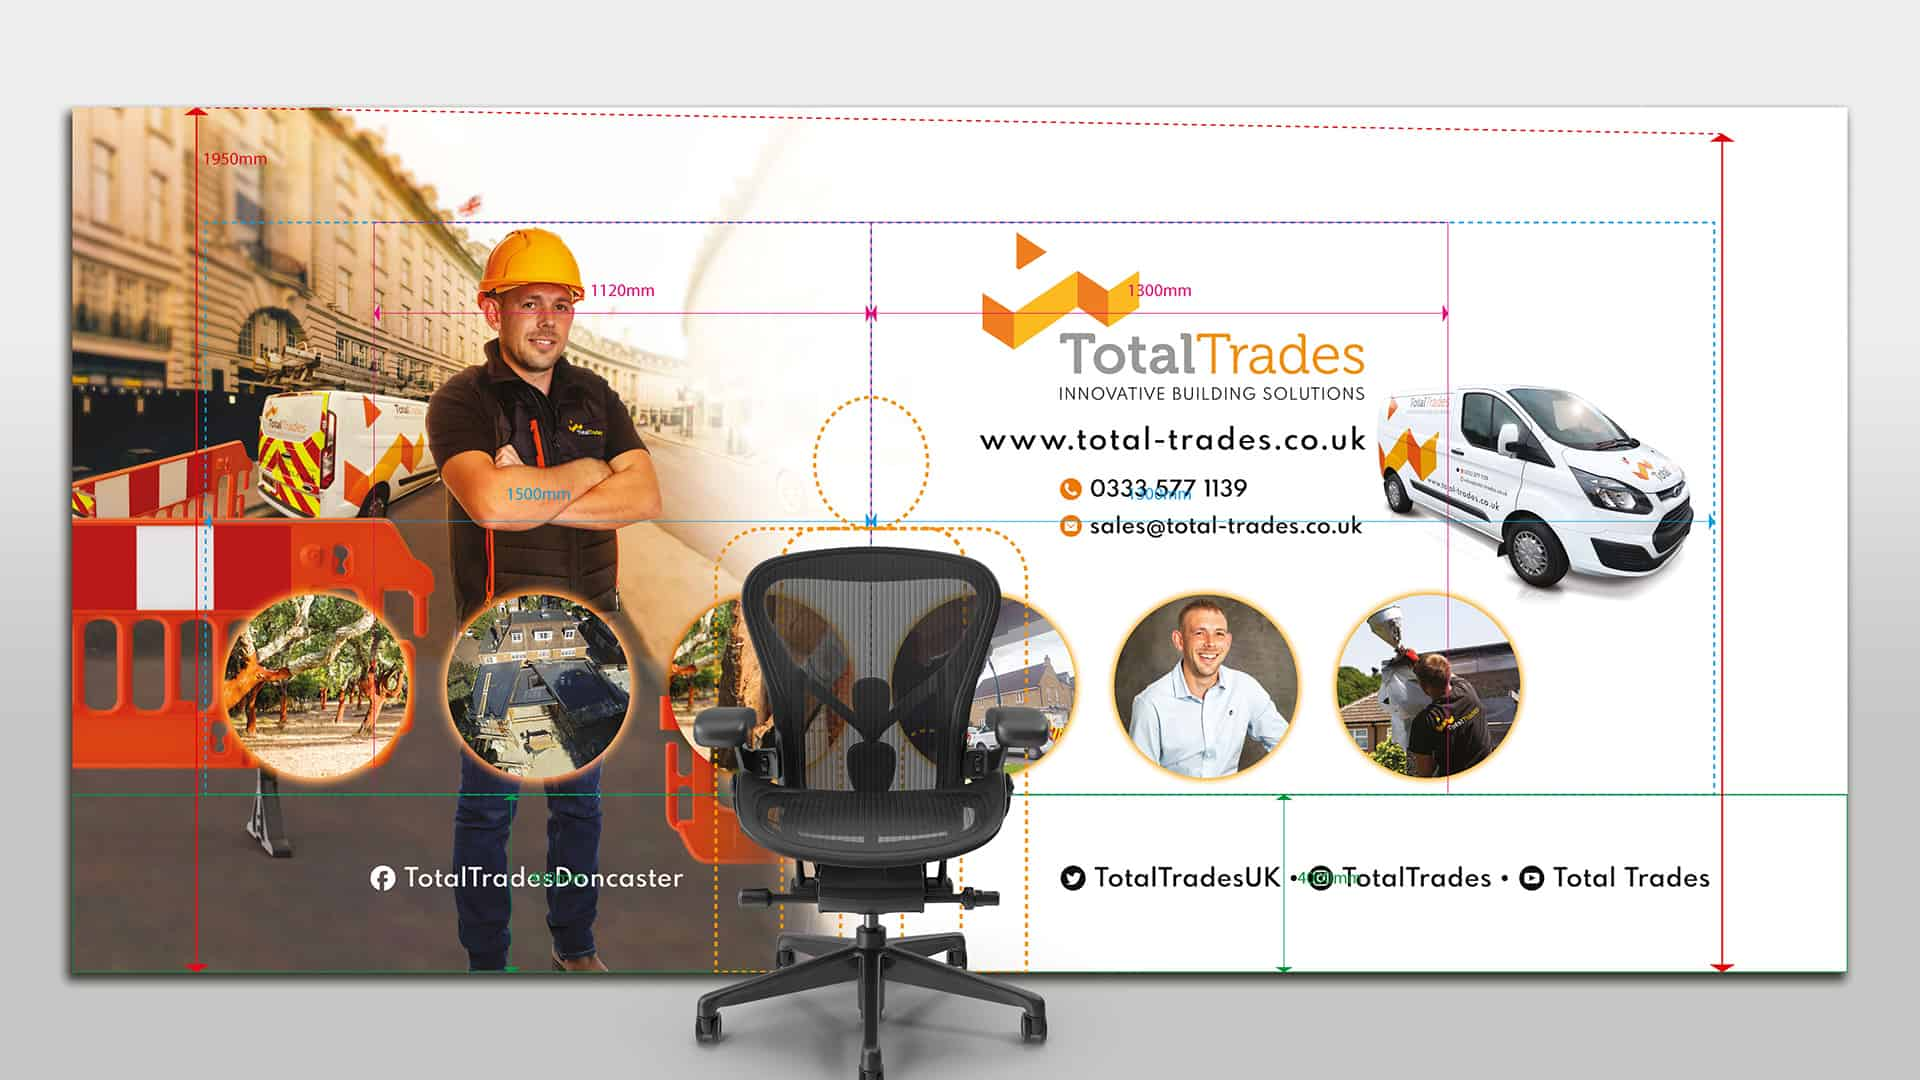 Total Trades Image 6